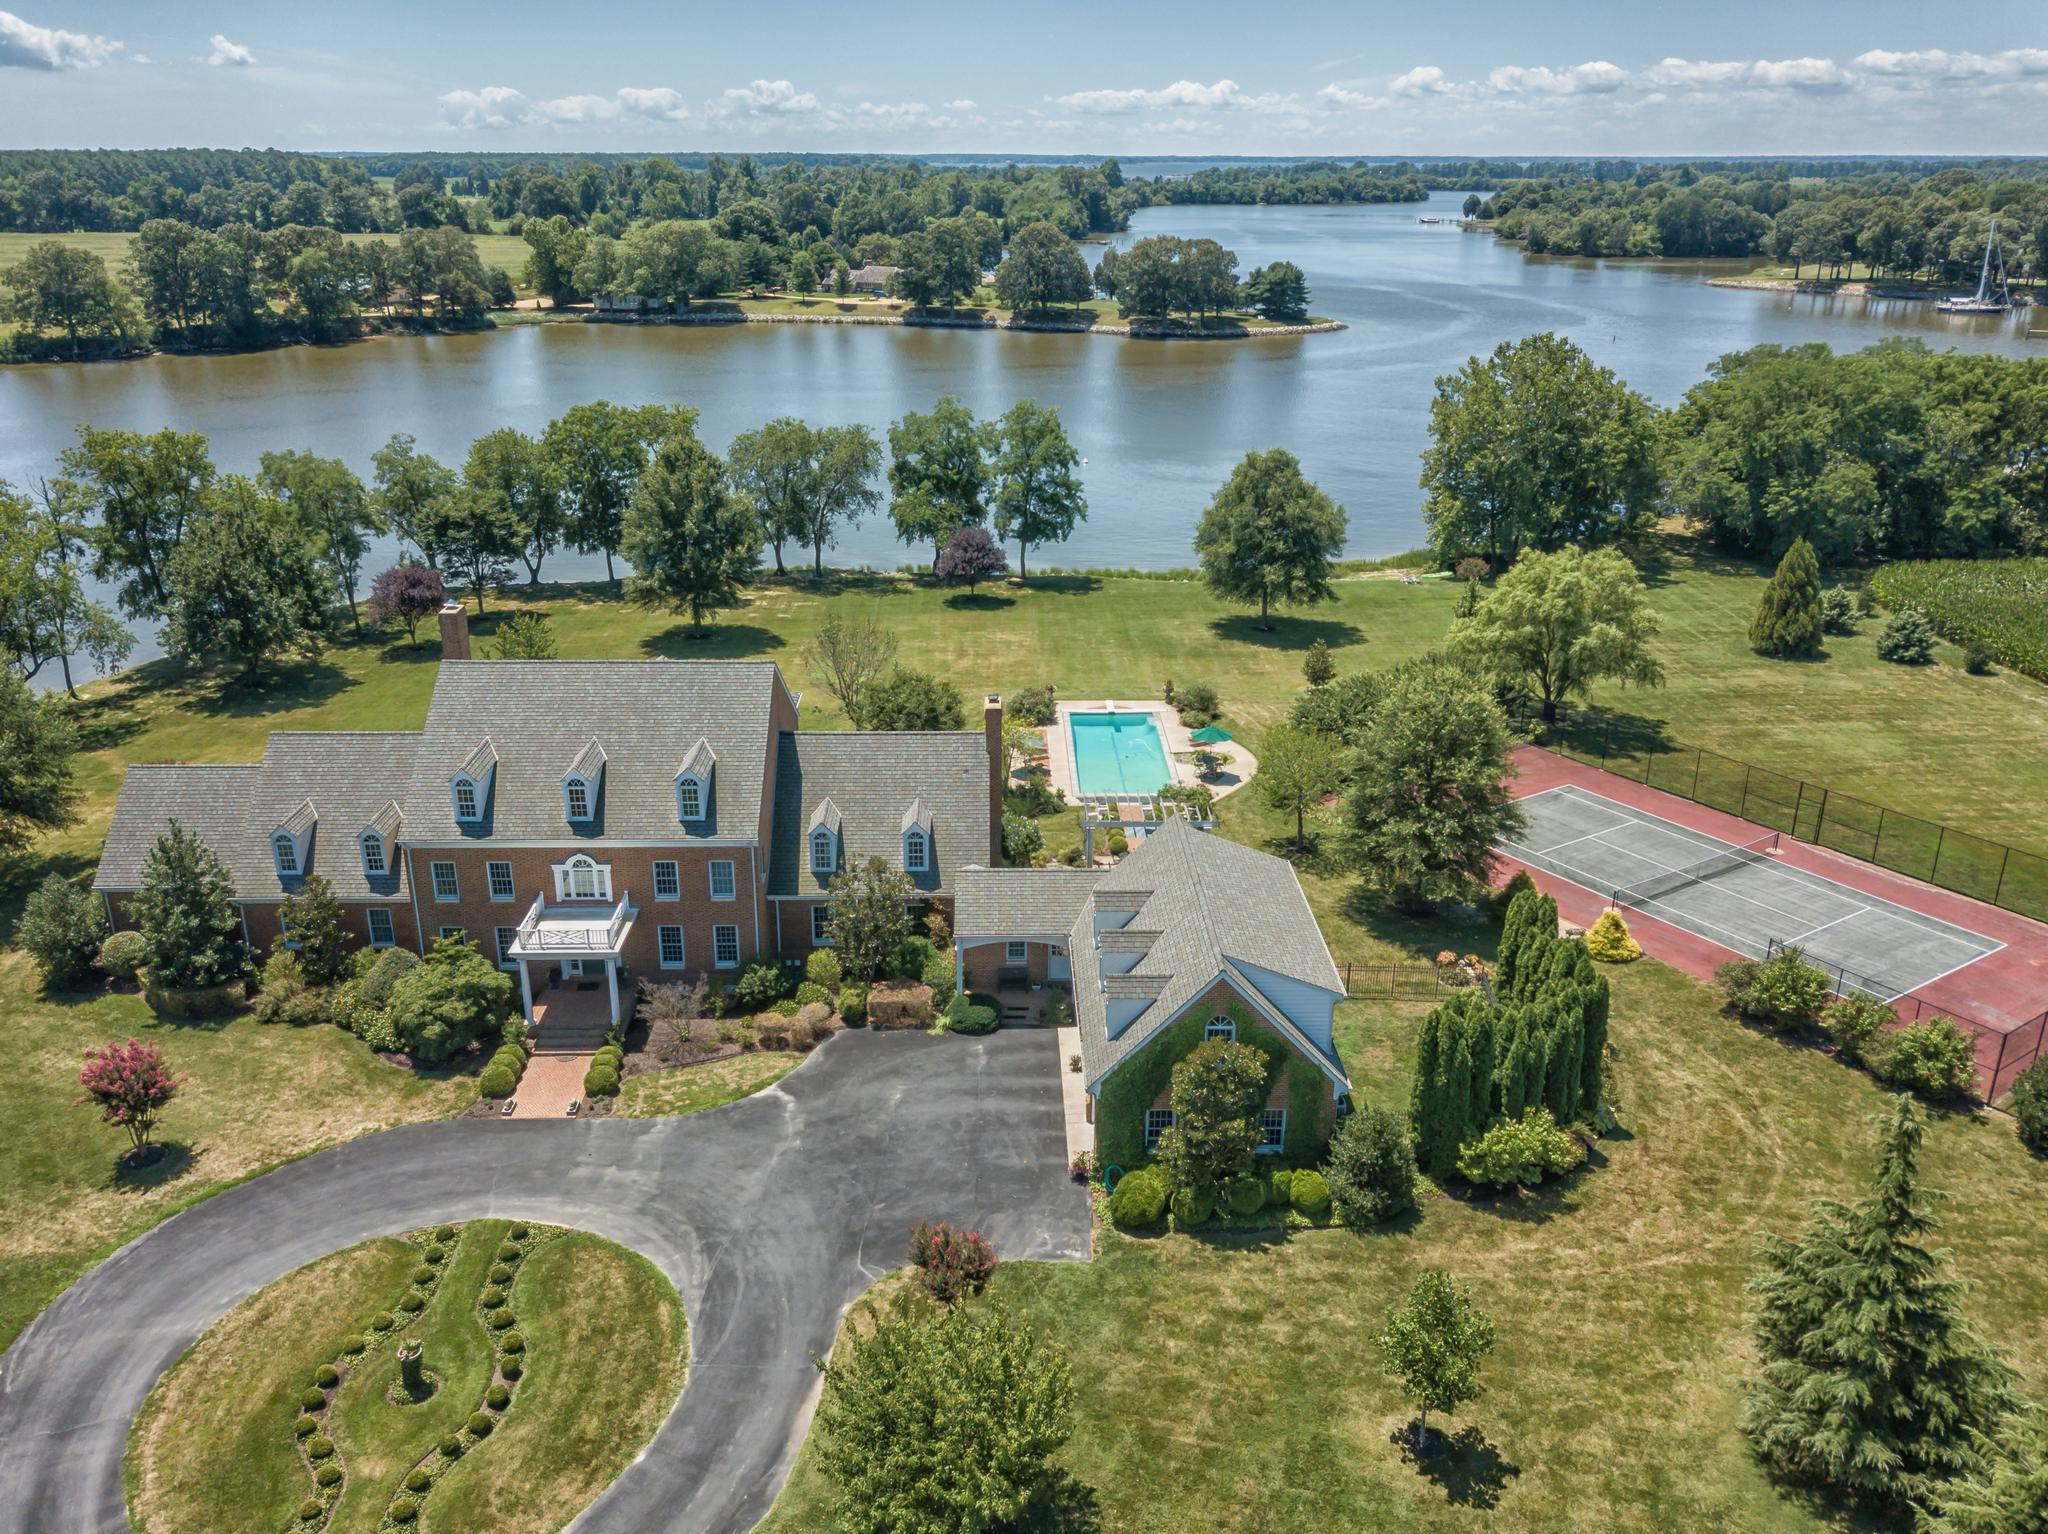 Property for Sale at 28115 Southside Island Creek Rd 28115 Southside Island Creek Rd Trappe, Maryland 21673 United States